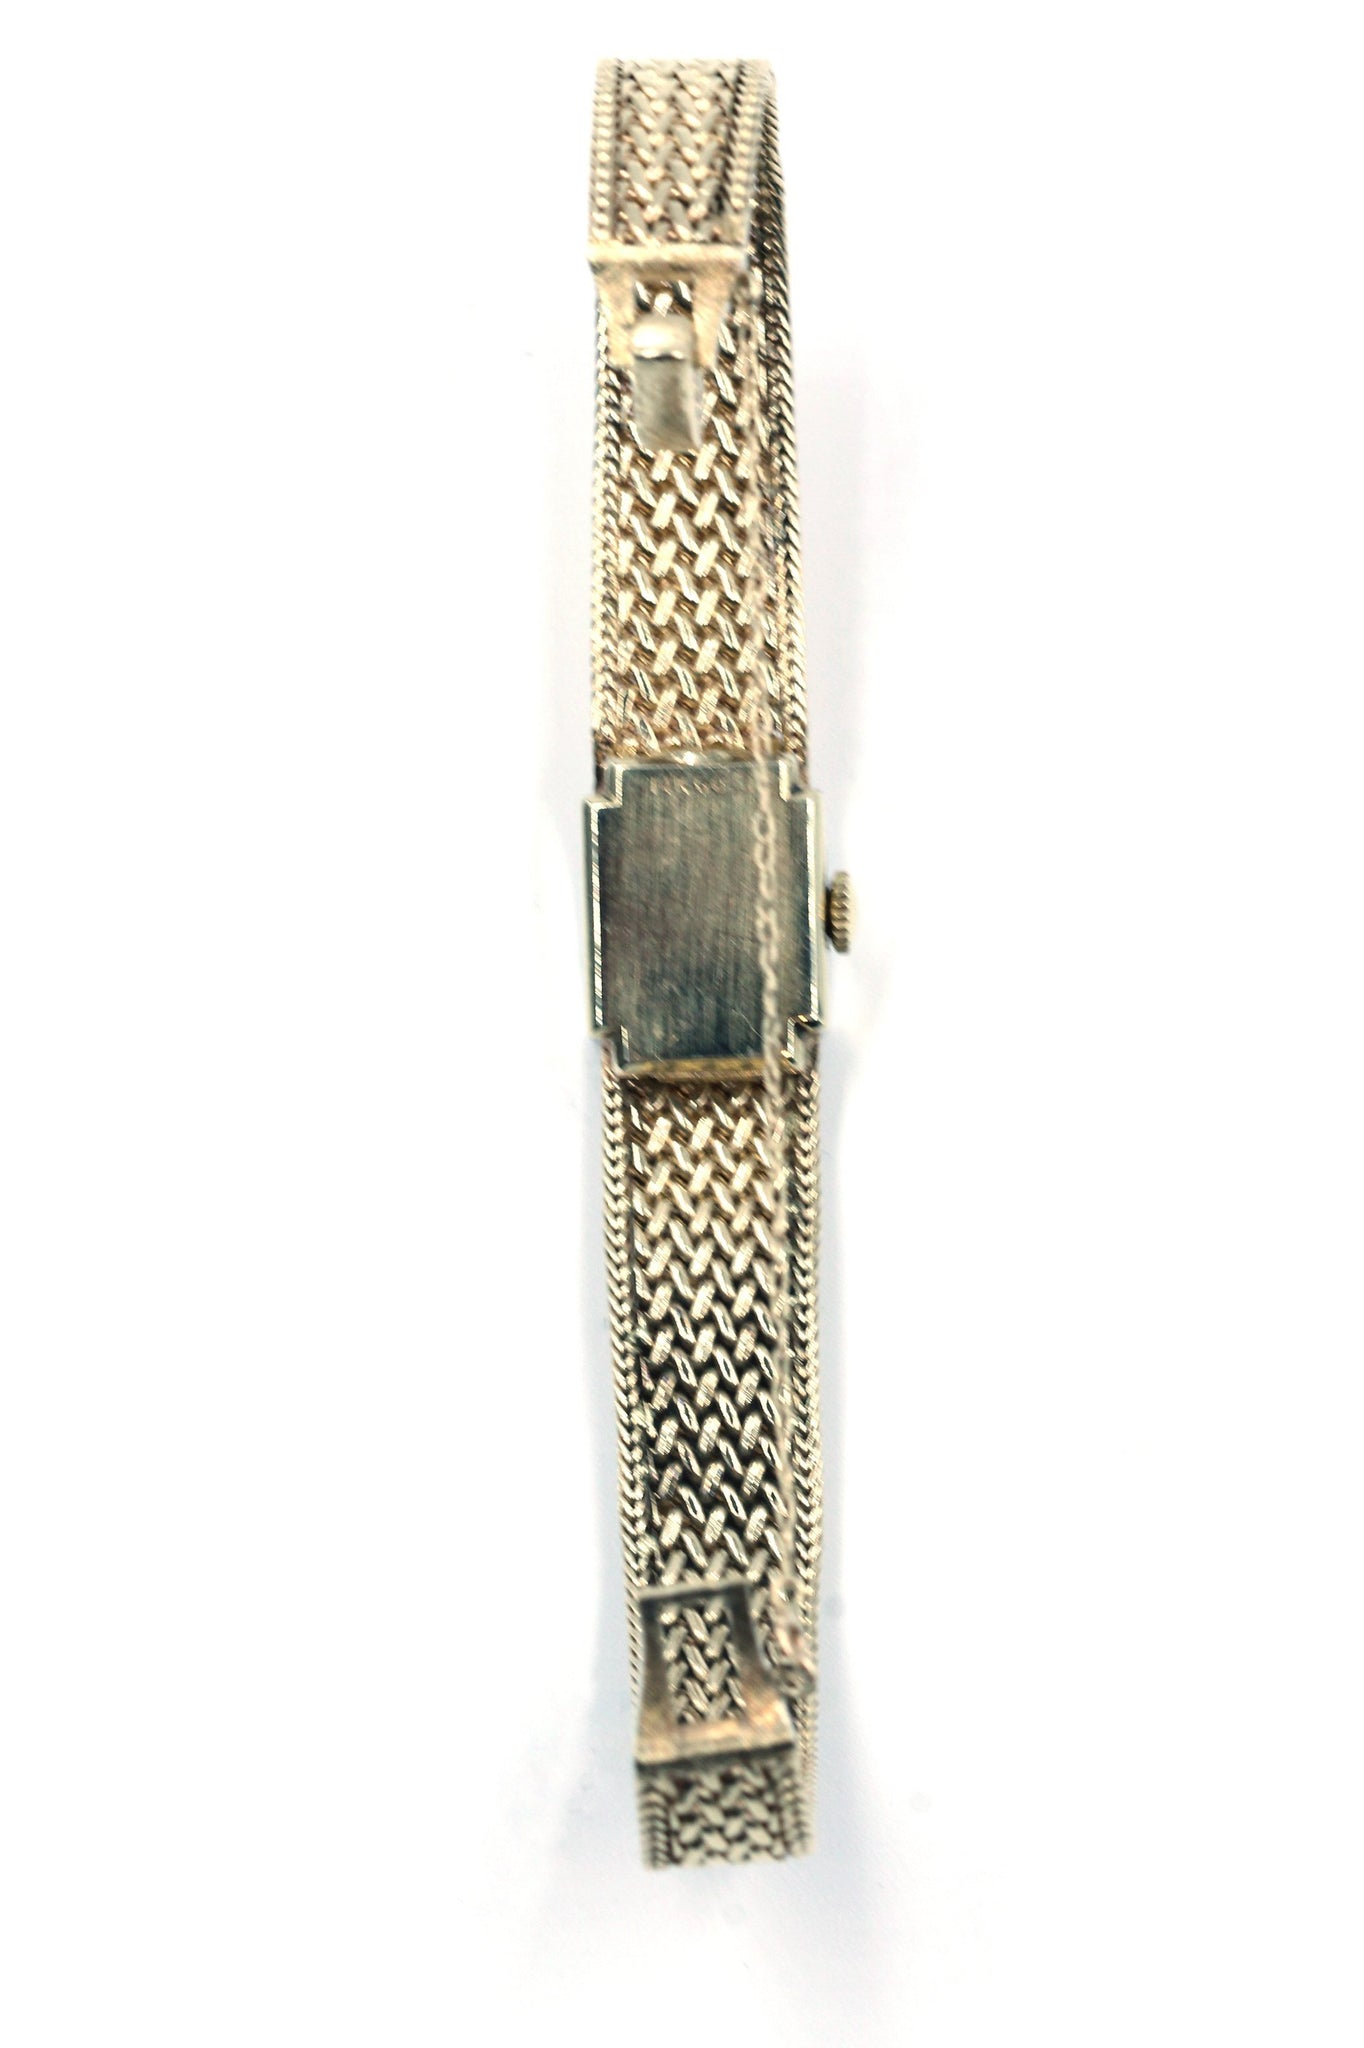 Vintage Gold and Diamond Watch